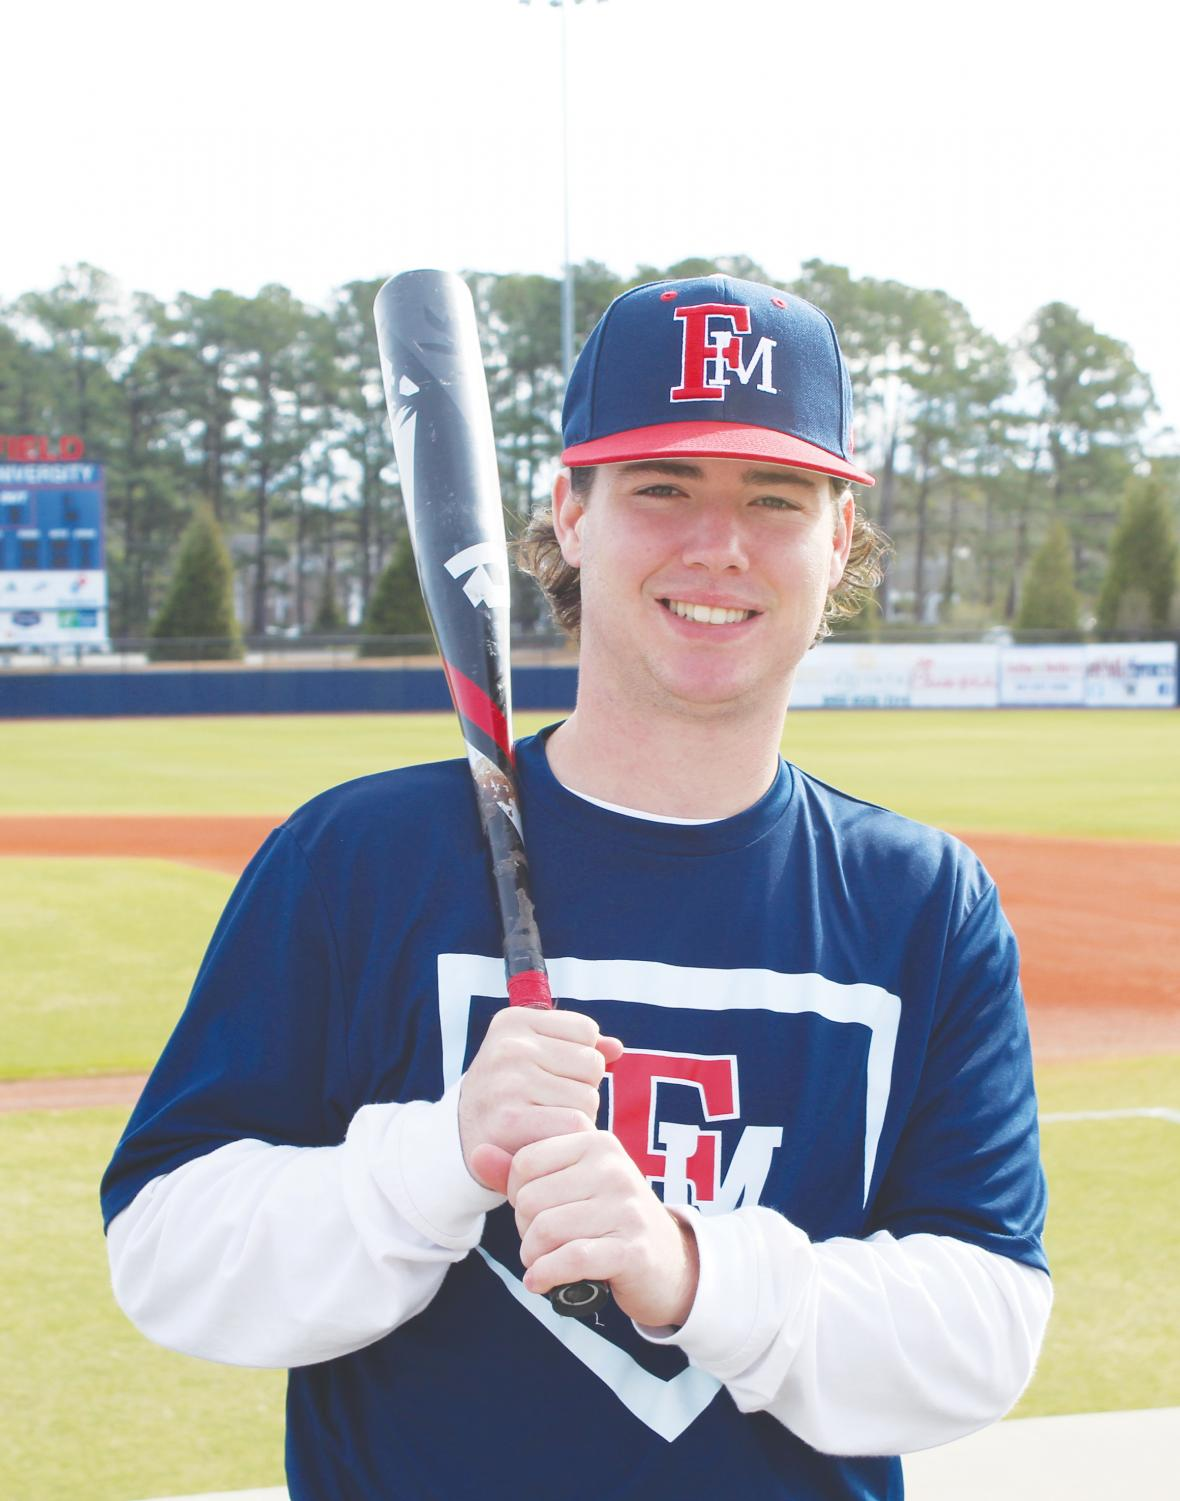 Jameson Spitzmiller is starting his second full season on the FMU baseball team. Spitzmiller is able to play multiple positions.